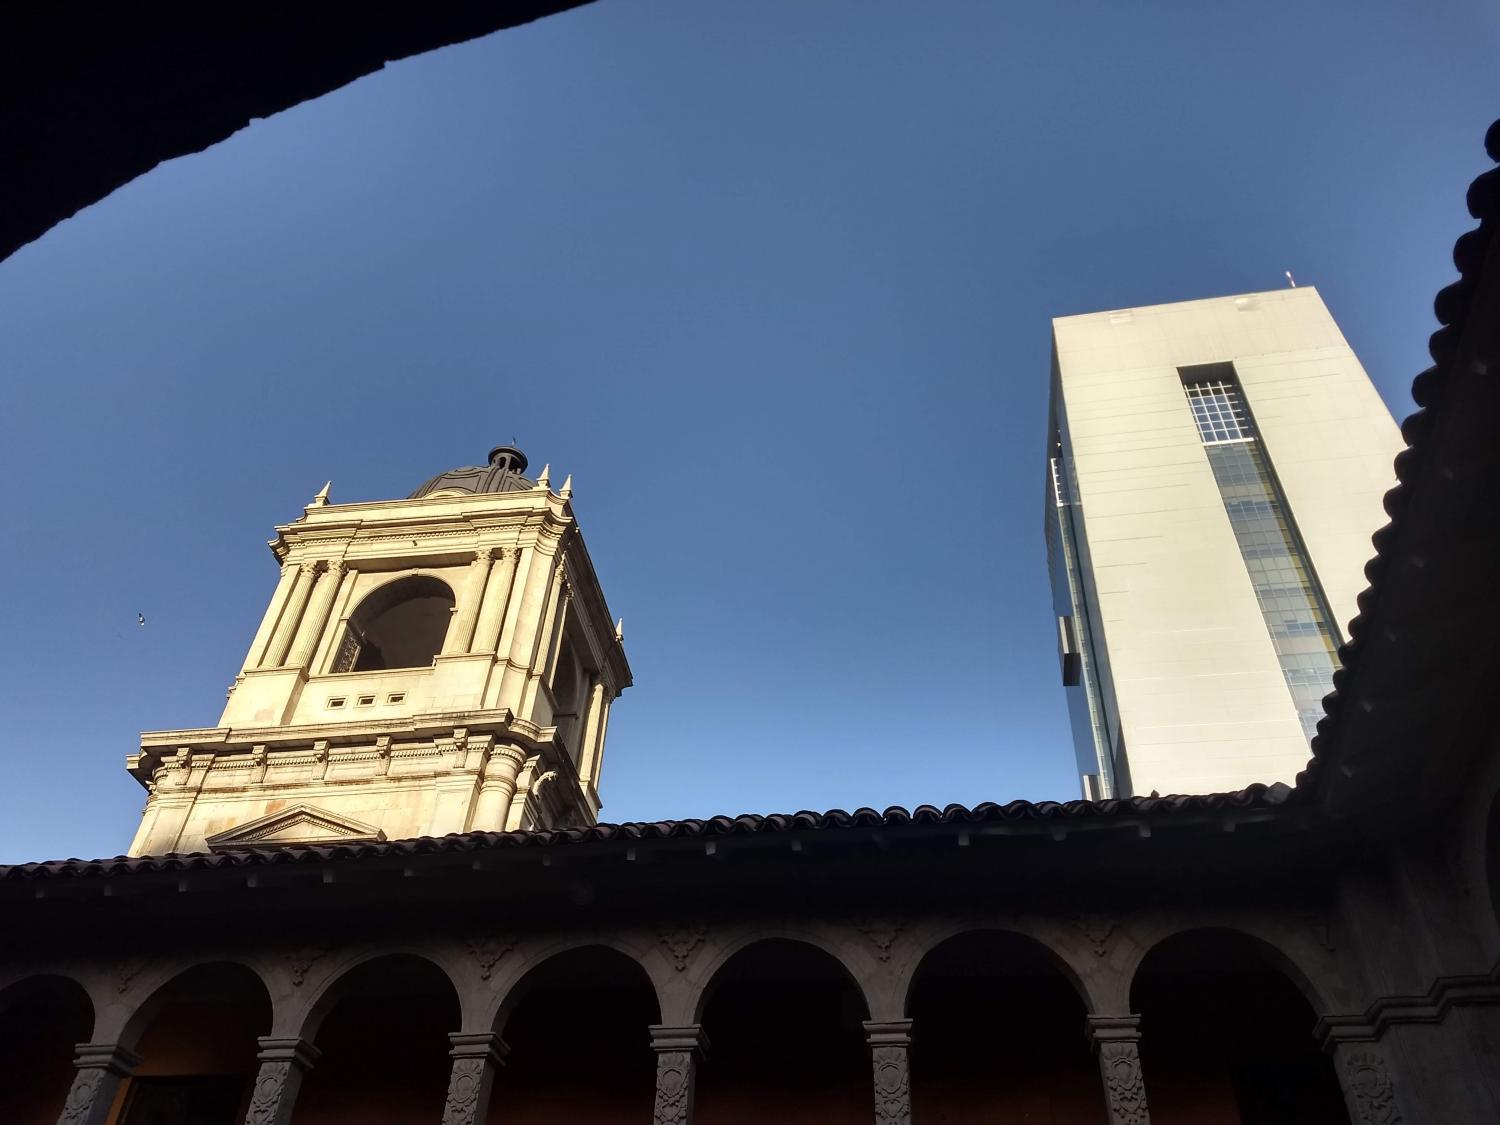 Image of Bolivian skyline with new skyscraper that contains Native imagery in its architecture. The view is looking up from the courtyard of a much more traditional building.